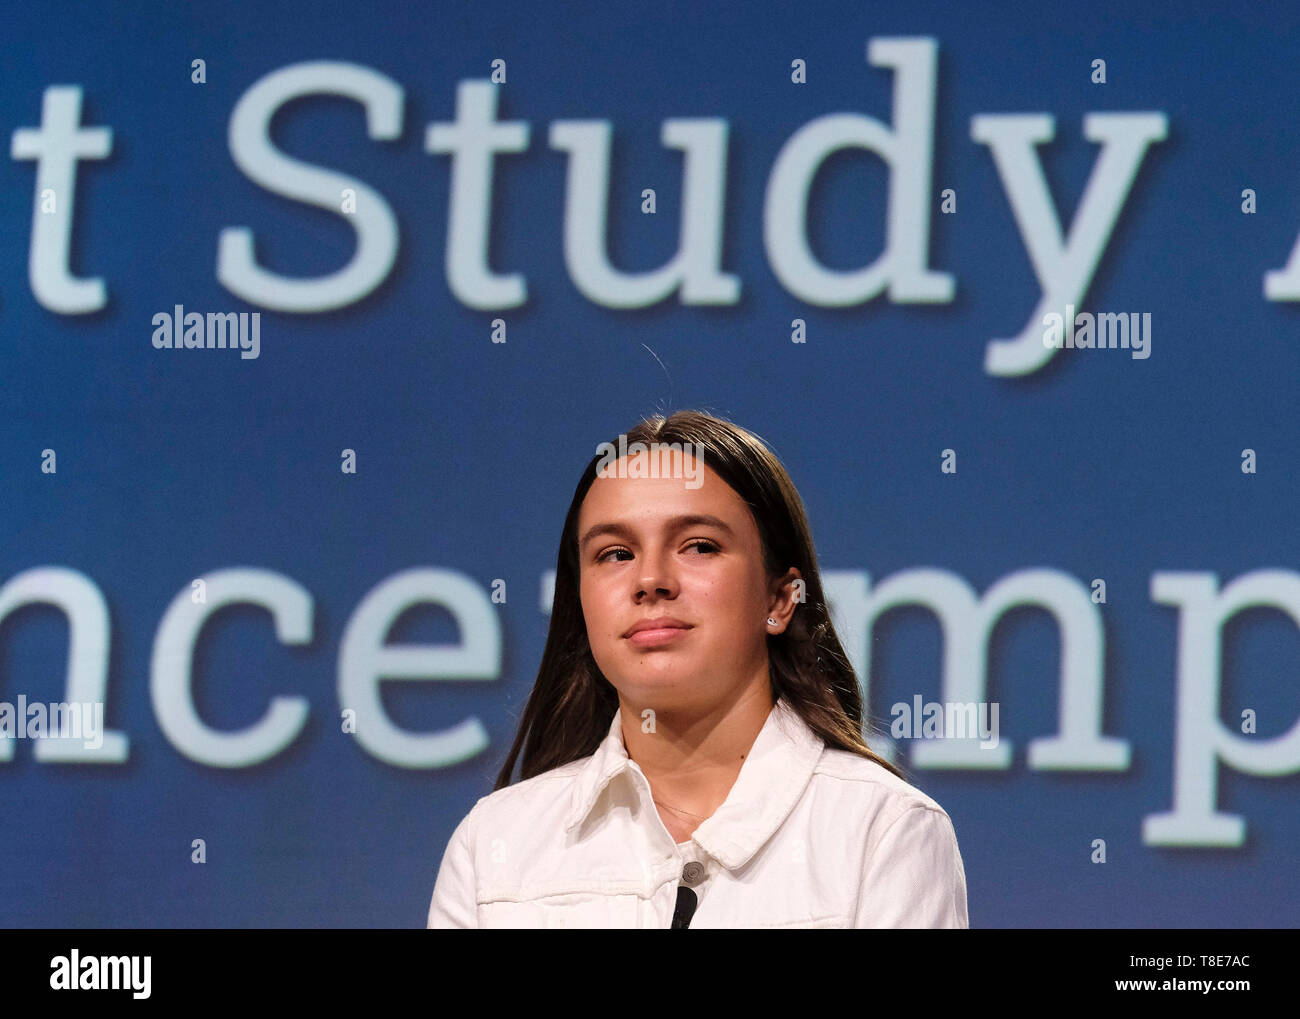 (190512) -- SAN DIEGO (U.S.), May 12, 2019 (Xinhua) -- Kamila Carter, a 13-year-old student of Tierra del Sol Middle School and the youngest speaker at the 2019 National Chinese Language Conference, attends a panel titled 'Student Study Abroad Experience: Impact and Best Practices' to share her story of being raised by deaf parents from two different countries and how she crosses U.S.-China barriers in the world of sounds and silence in San Diego, the United States, on May 10, 2019. The annual National Chinese Language Conference is the largest annual gathering in North America that brings tog - Stock Image